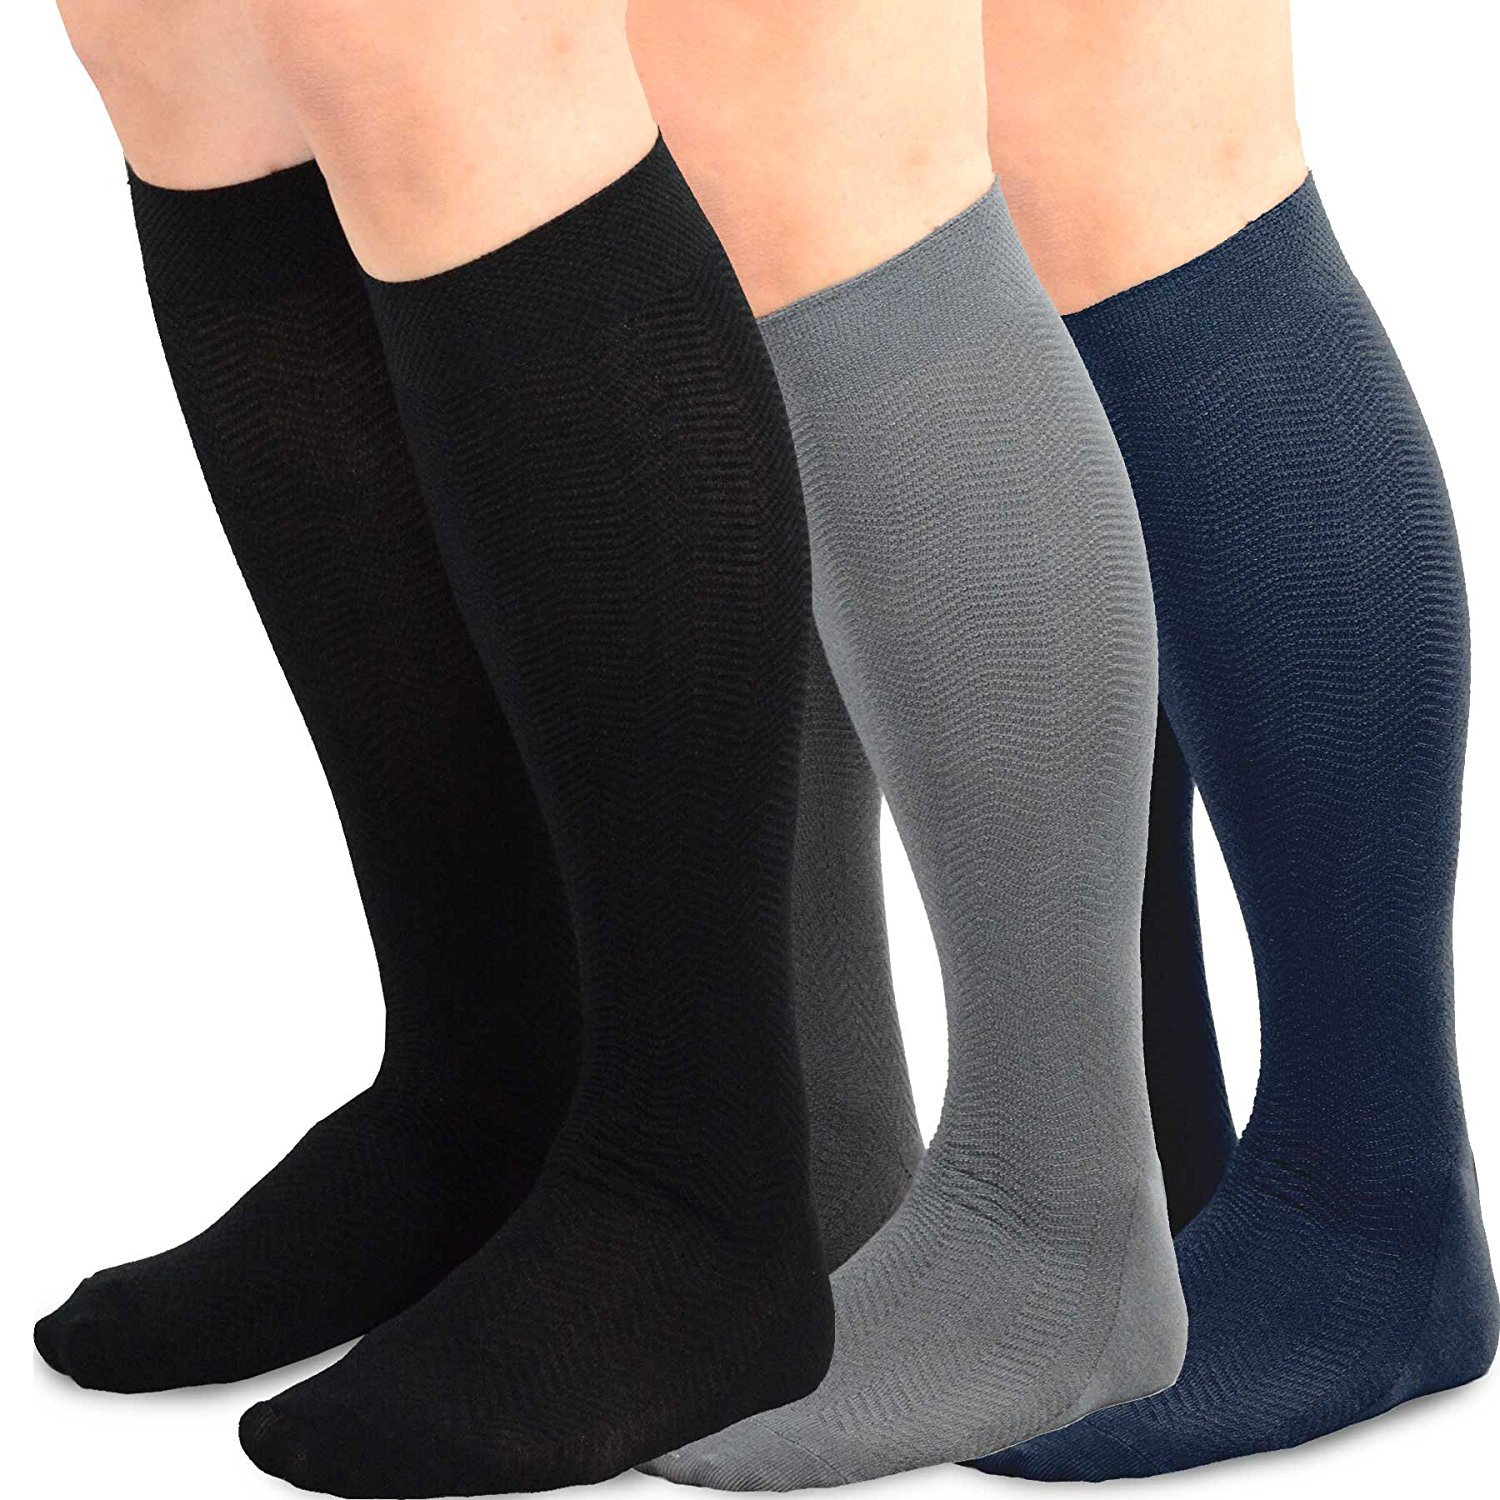 TeeHee Men's Bamboo Crew Dress Socks 3-pack